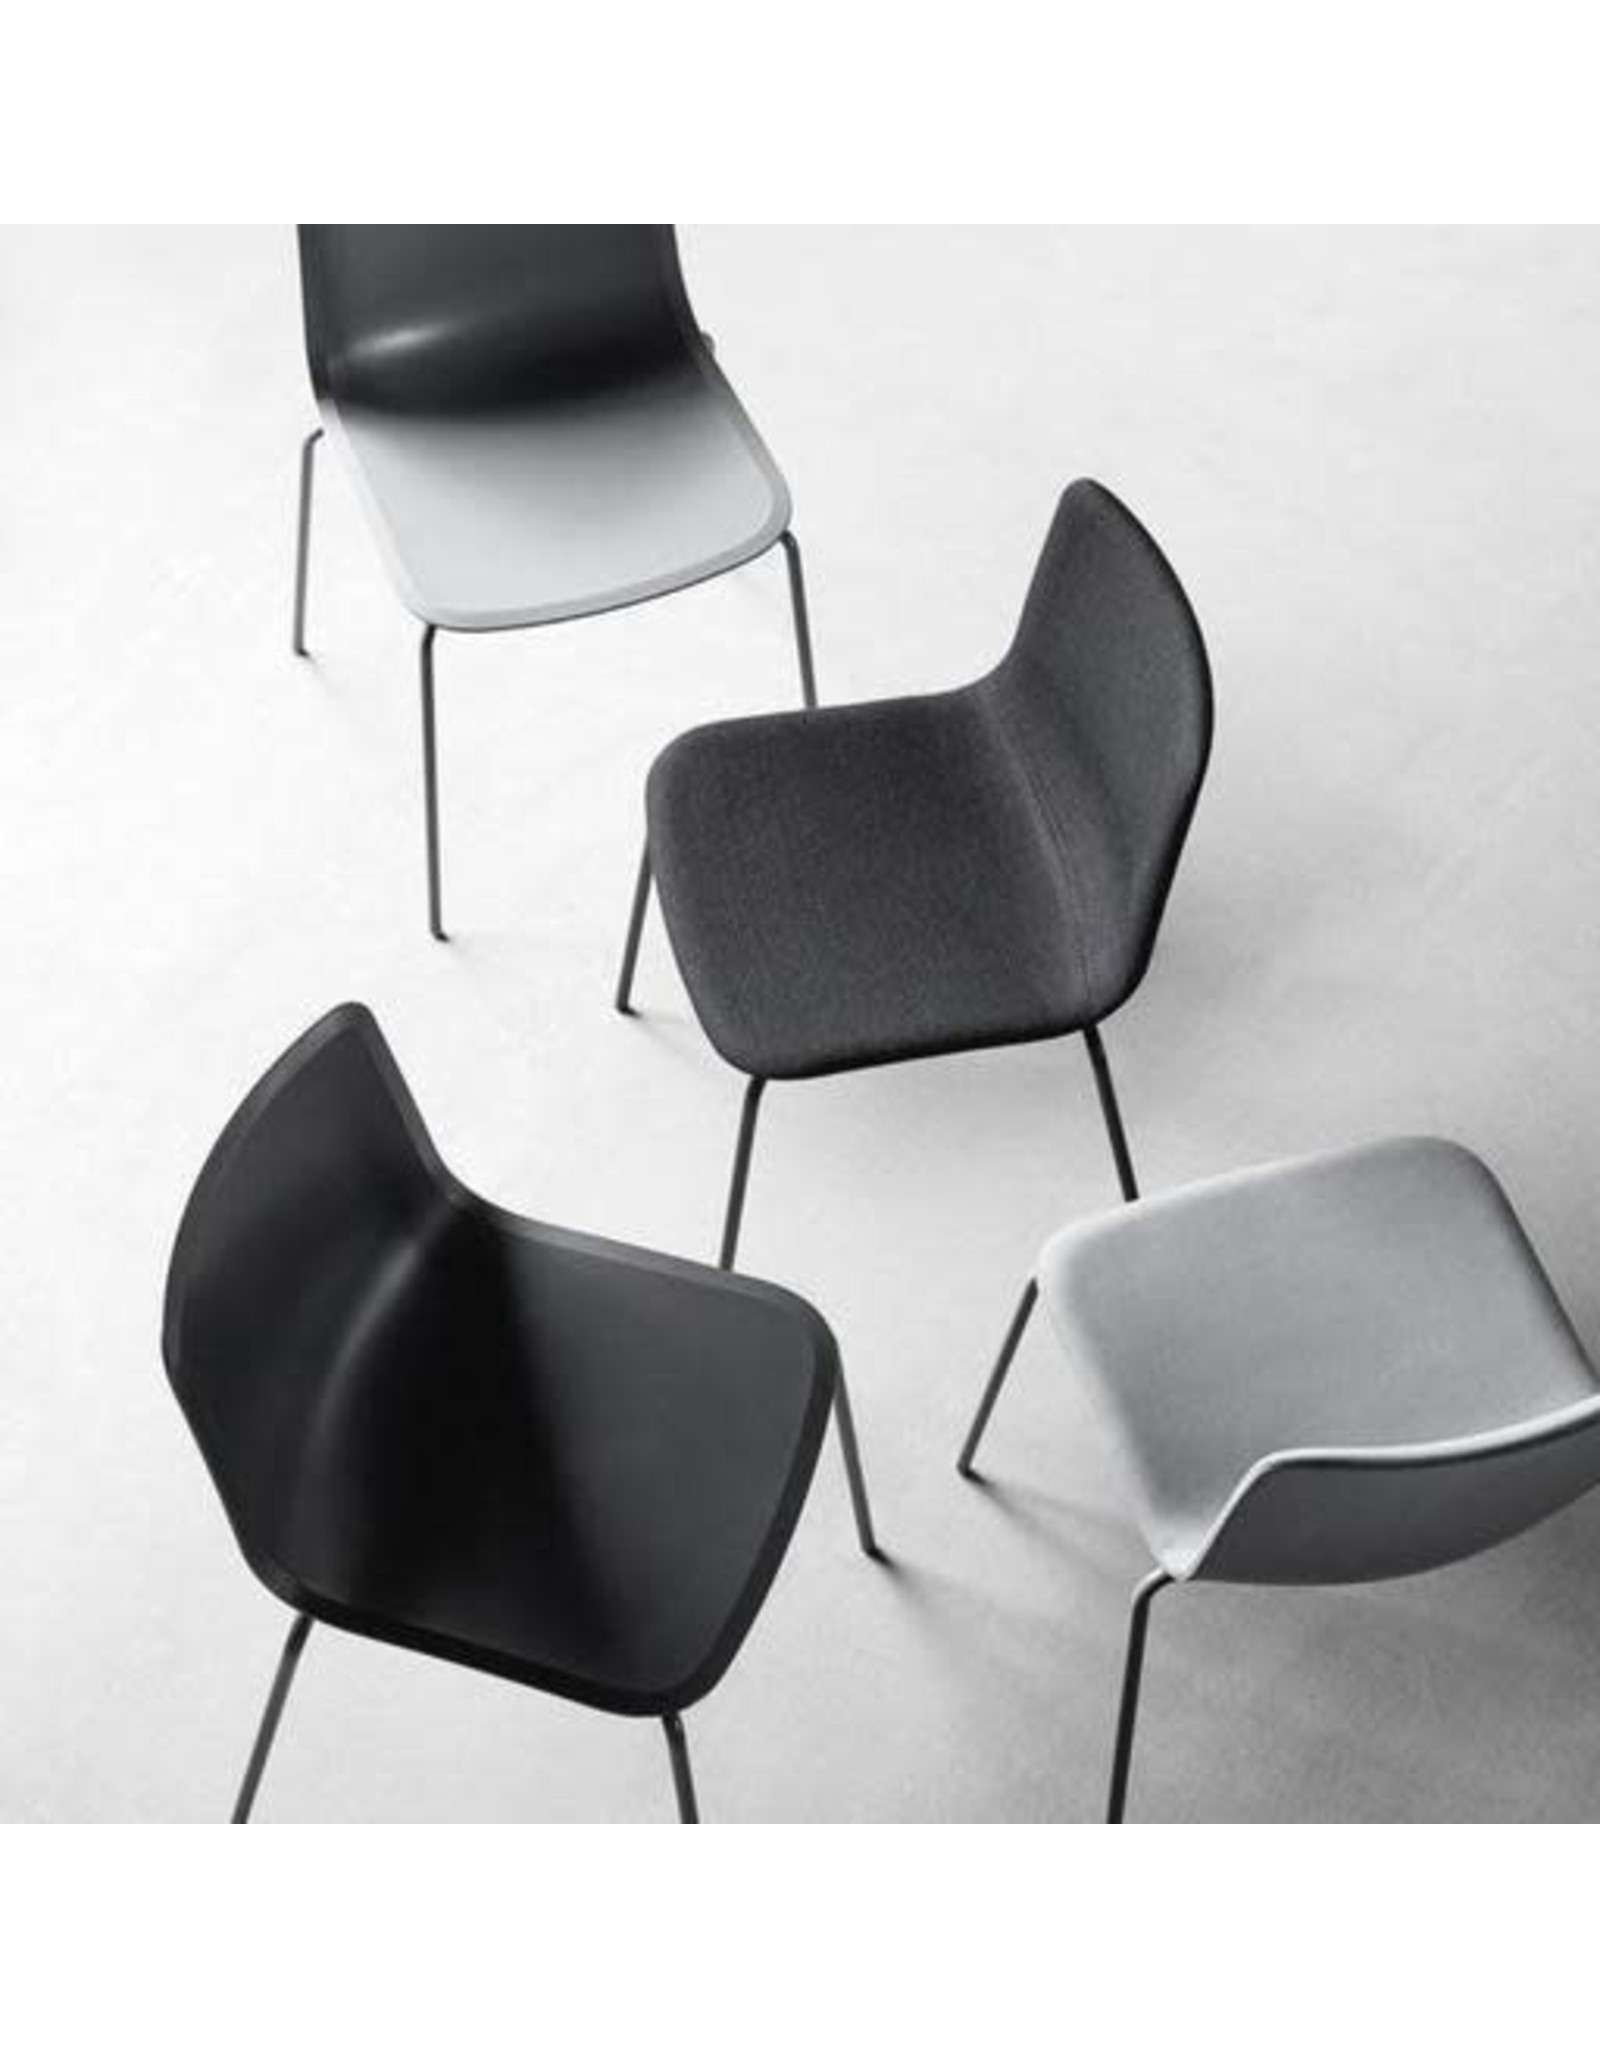 PATO CHAIRS IN STEEL LEGS